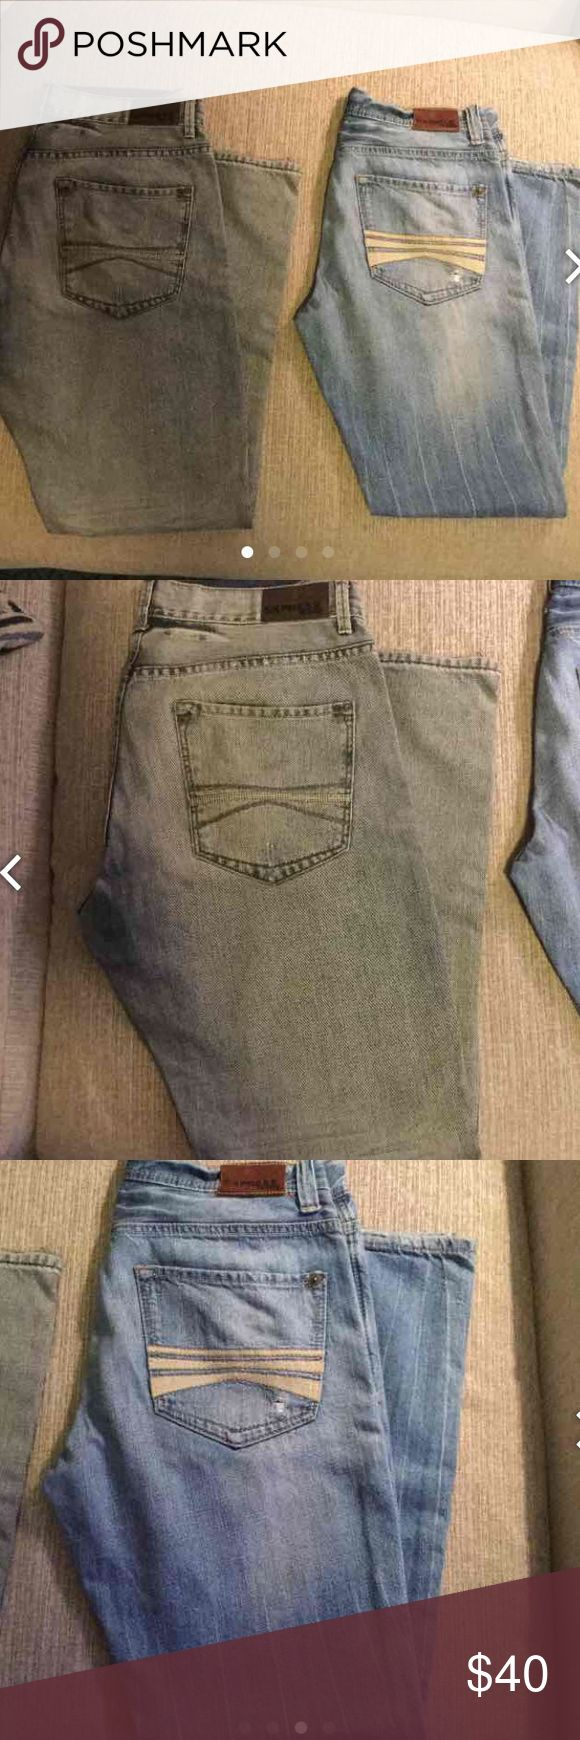 Express Blake jeans bundle Express Jeans, Blake Loose Fit Boot Cut 32x32 Bundle, these jeans are in great condition Express Jeans Bootcut